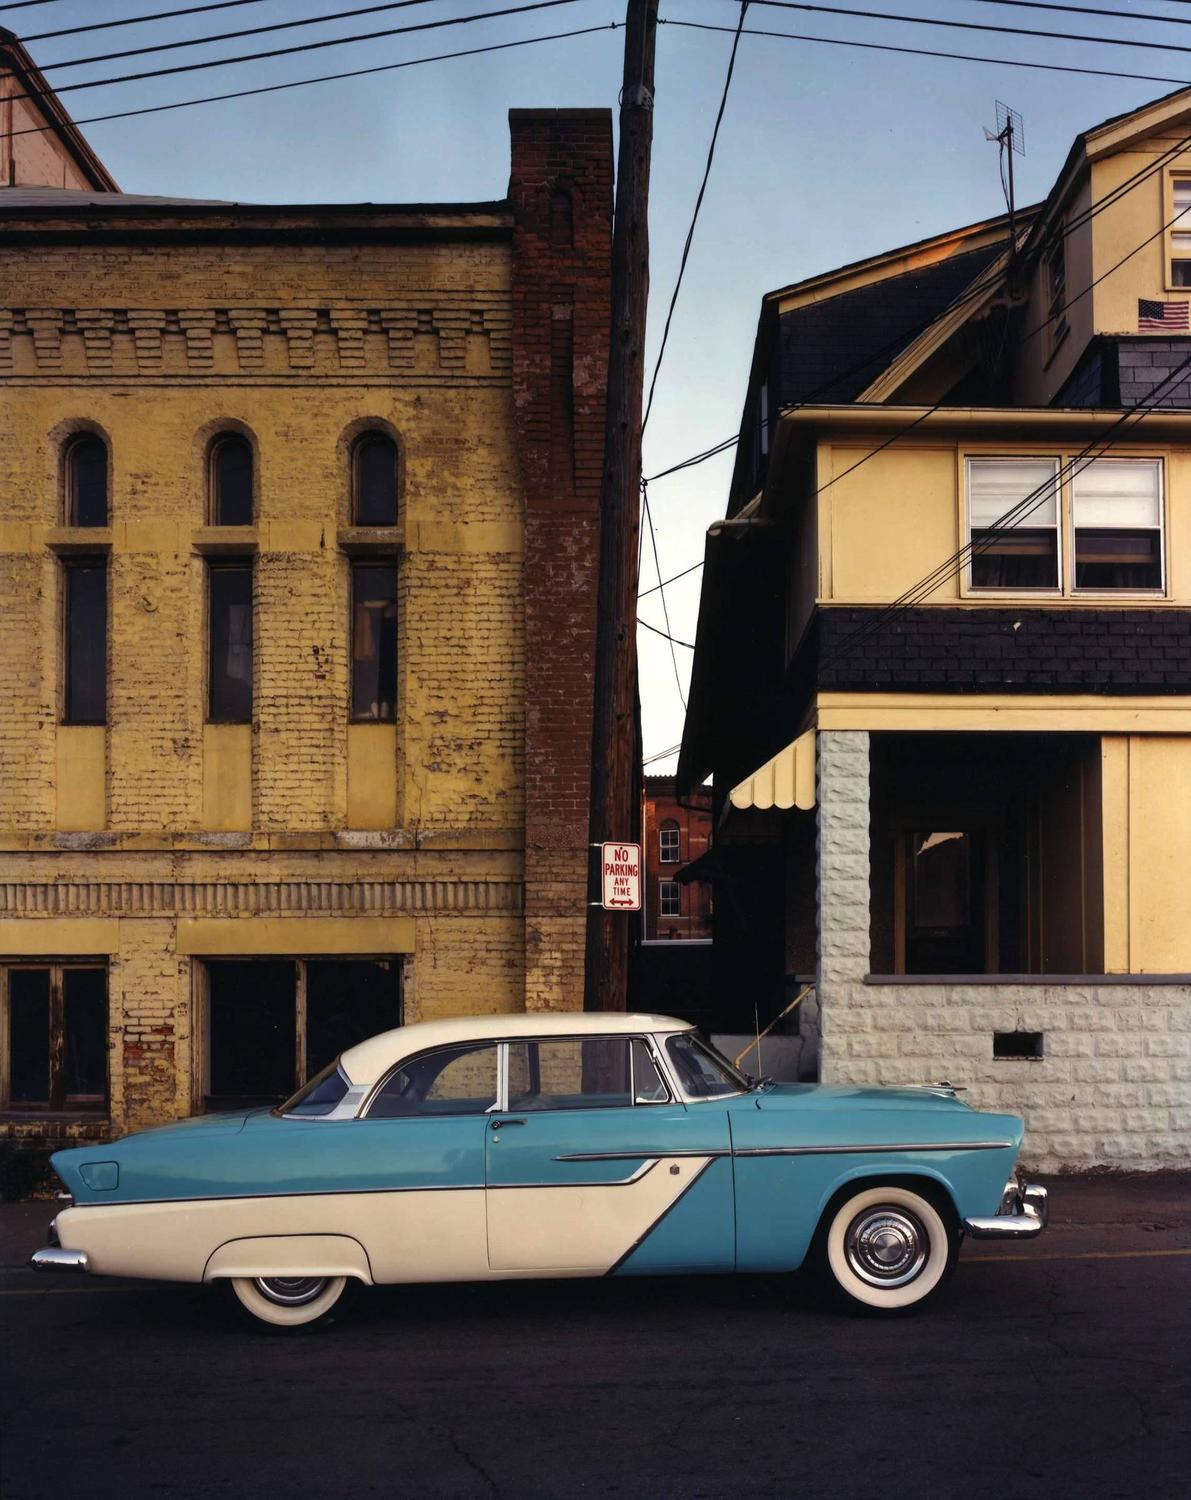 Bruce Wrighton 1955 Plymouth Belvedere From The Series